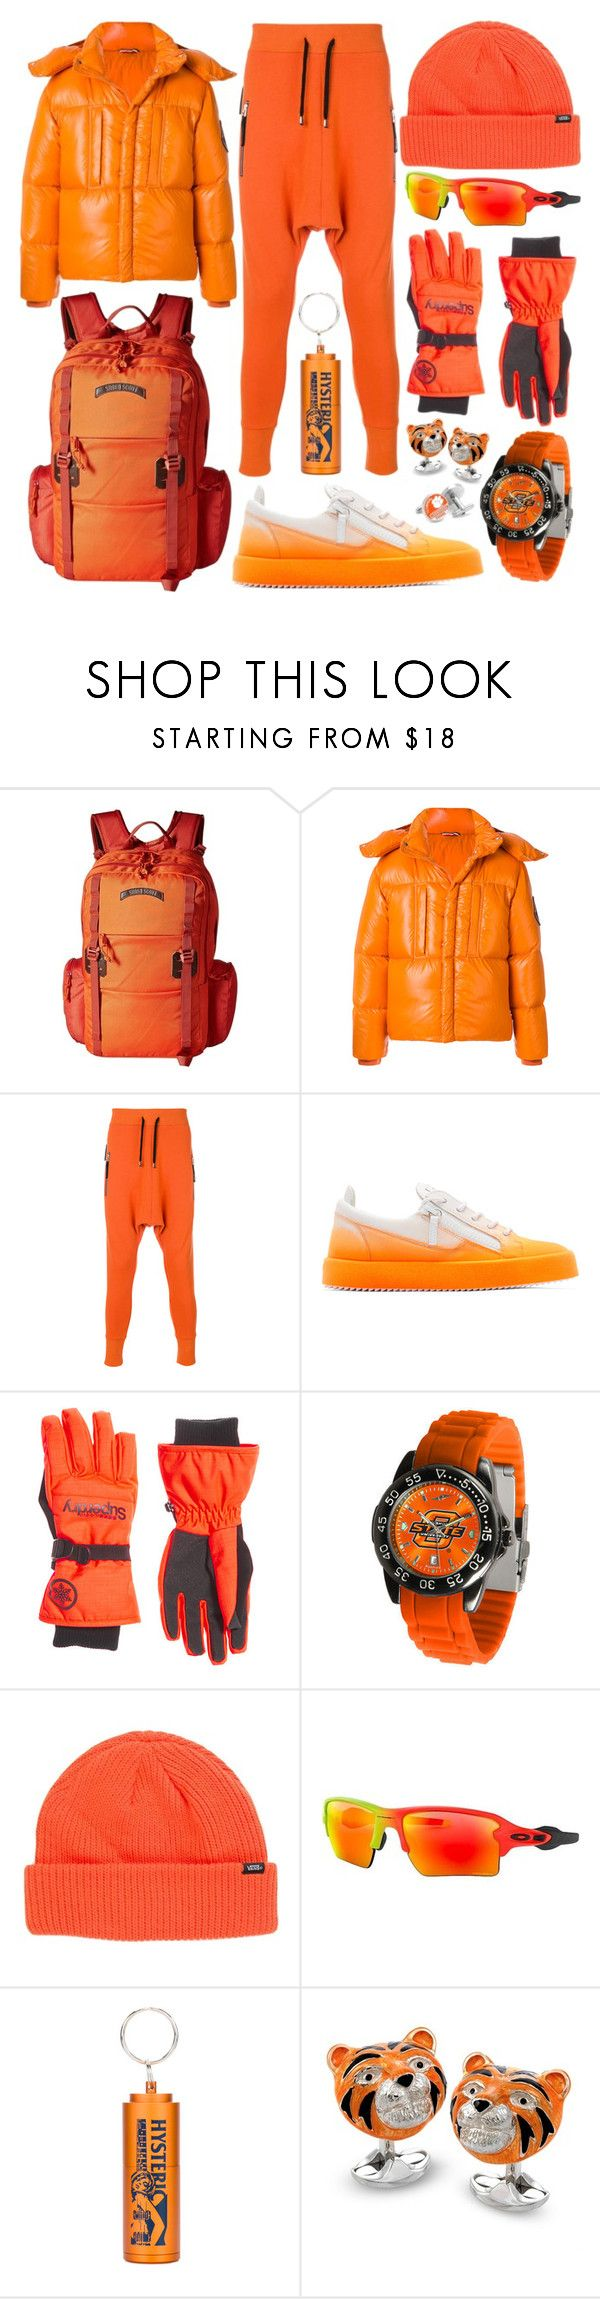 """""""Orange Is The News"""" by modaehestilo ❤ liked on Polyvore featuring Burton, Moncler, UNCONDITIONAL, Giuseppe Zanotti, Superdry, Vans, Oakley and HYSTERIC GLAMOUR"""